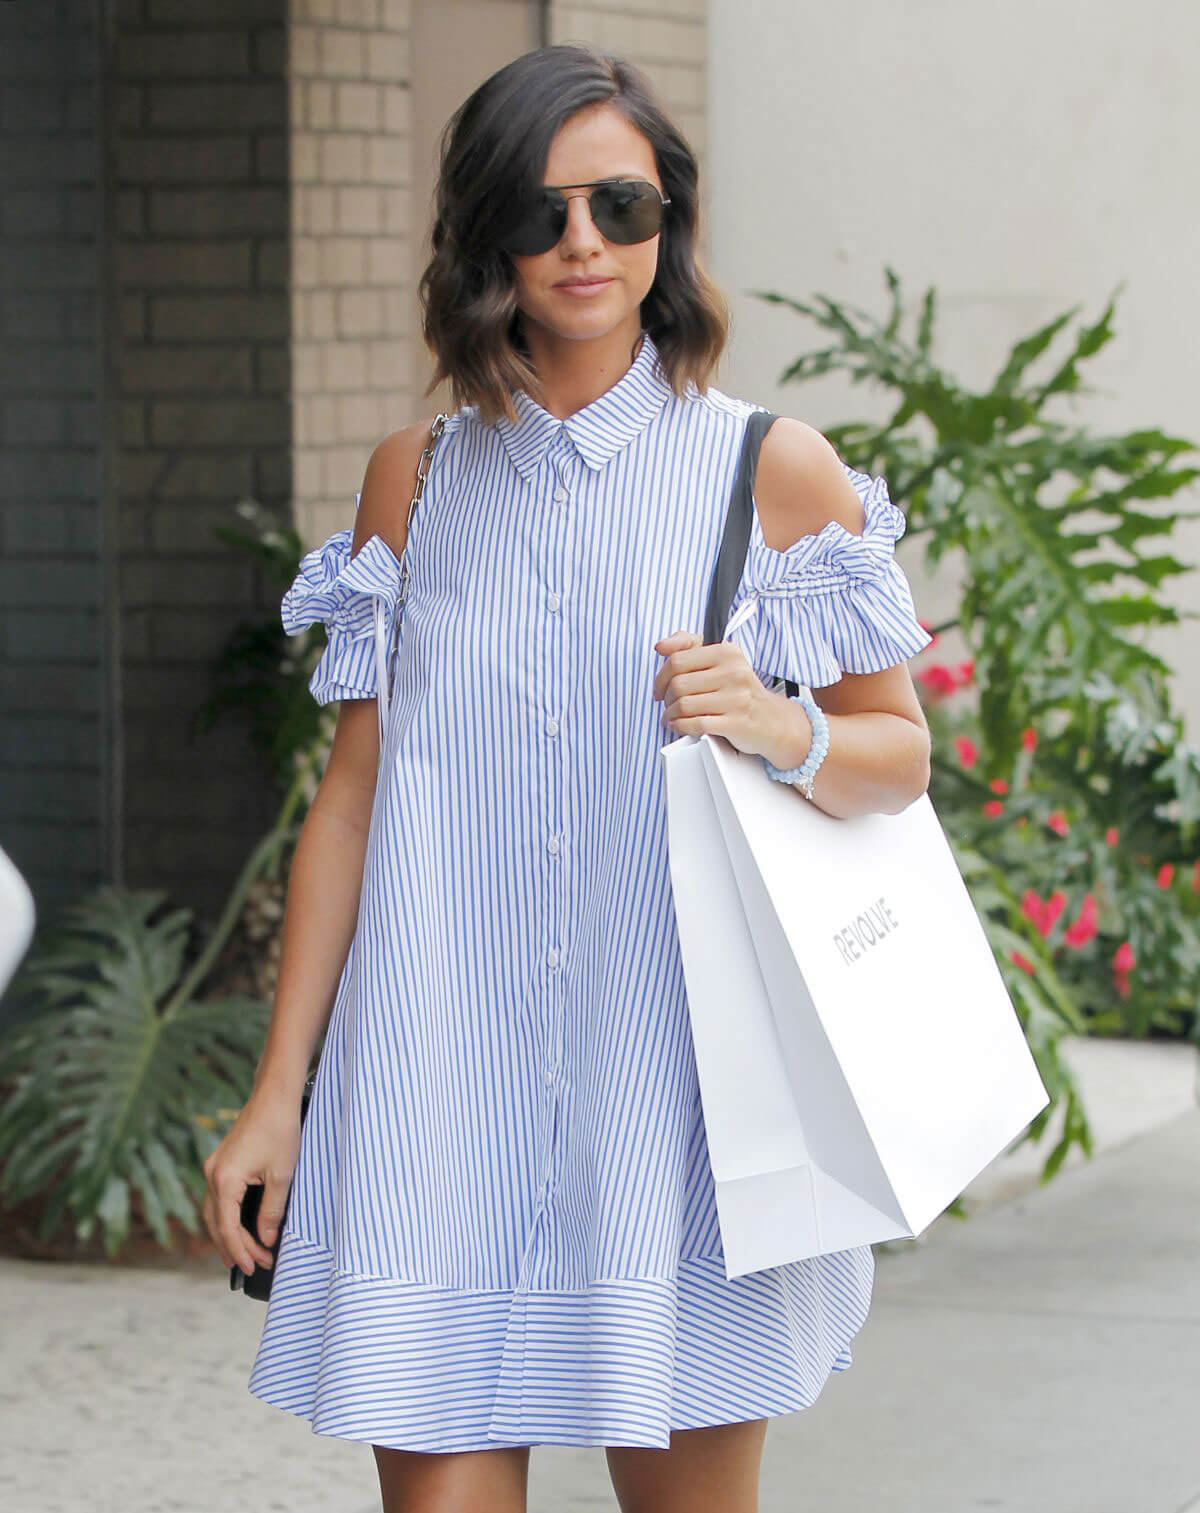 Lucy Mecklenburgh Stills Out Shopping in West Hollywood